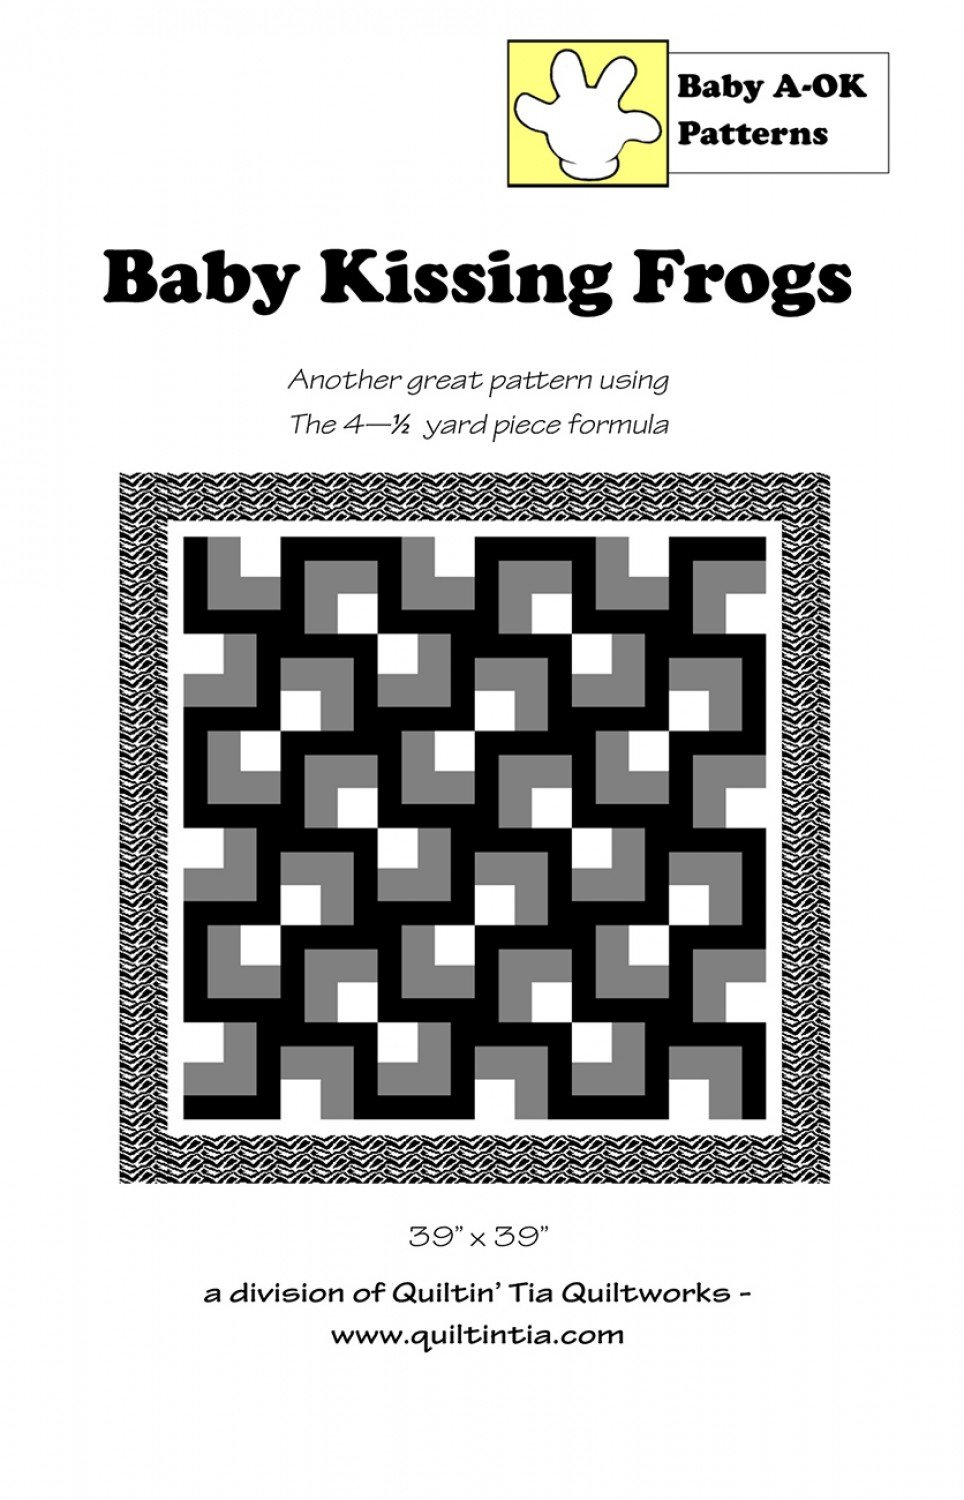 Baby Kissing Frogs Baby A-OK Pattern